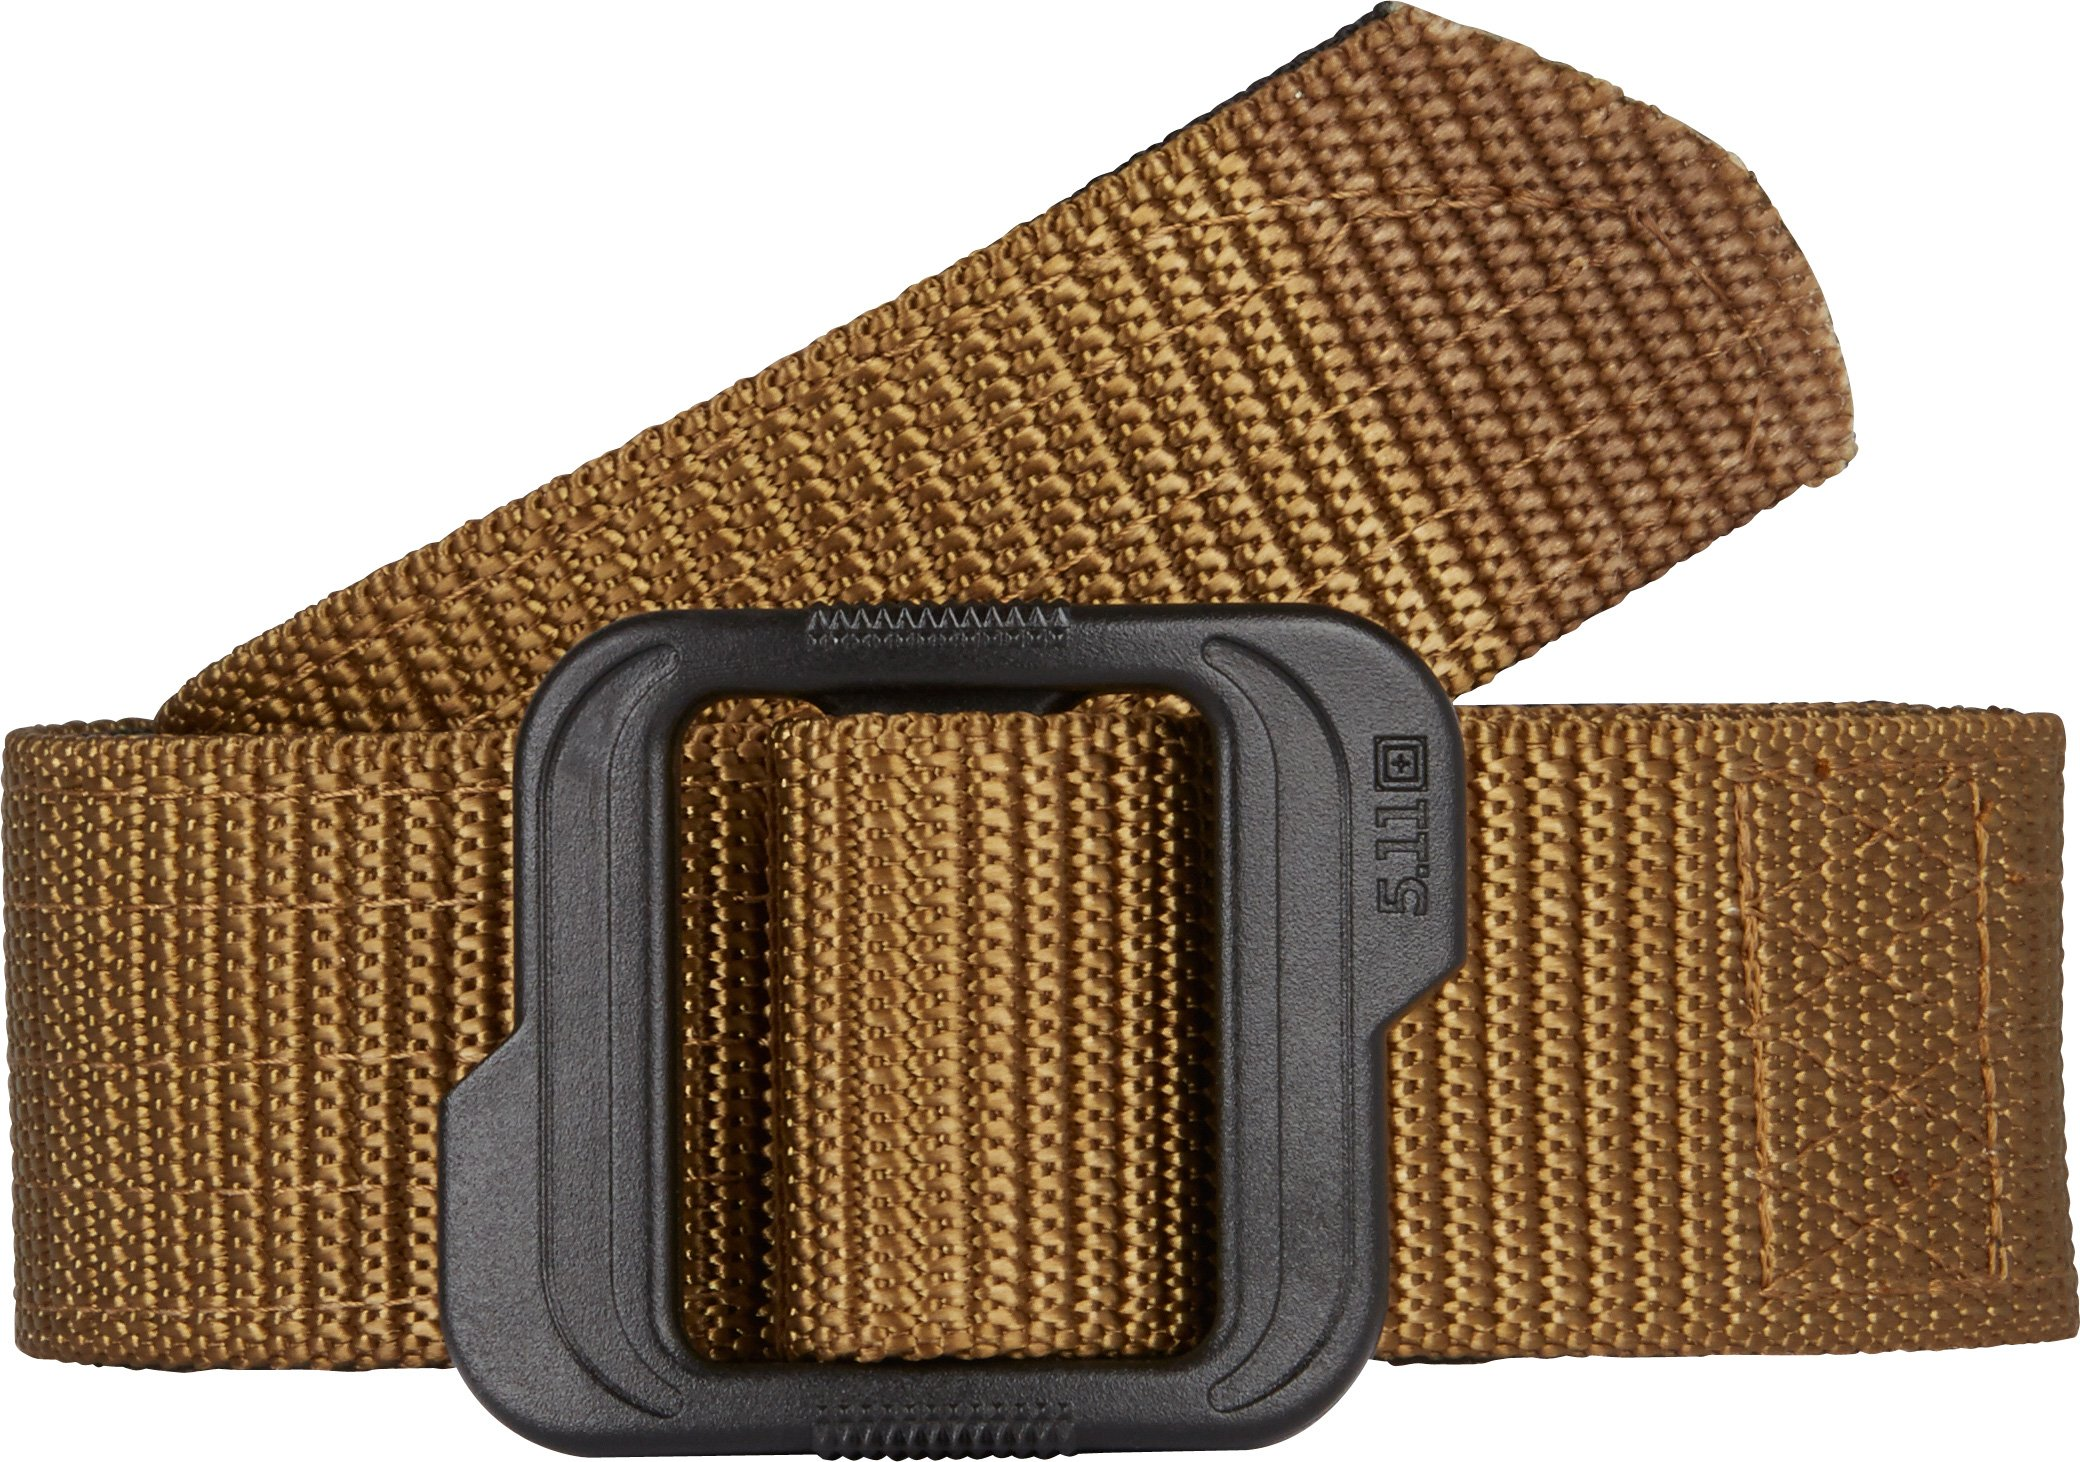 5.11 Tactical 1.5 Double Duty TDU Belt - (Coyote / Black ) - Medium